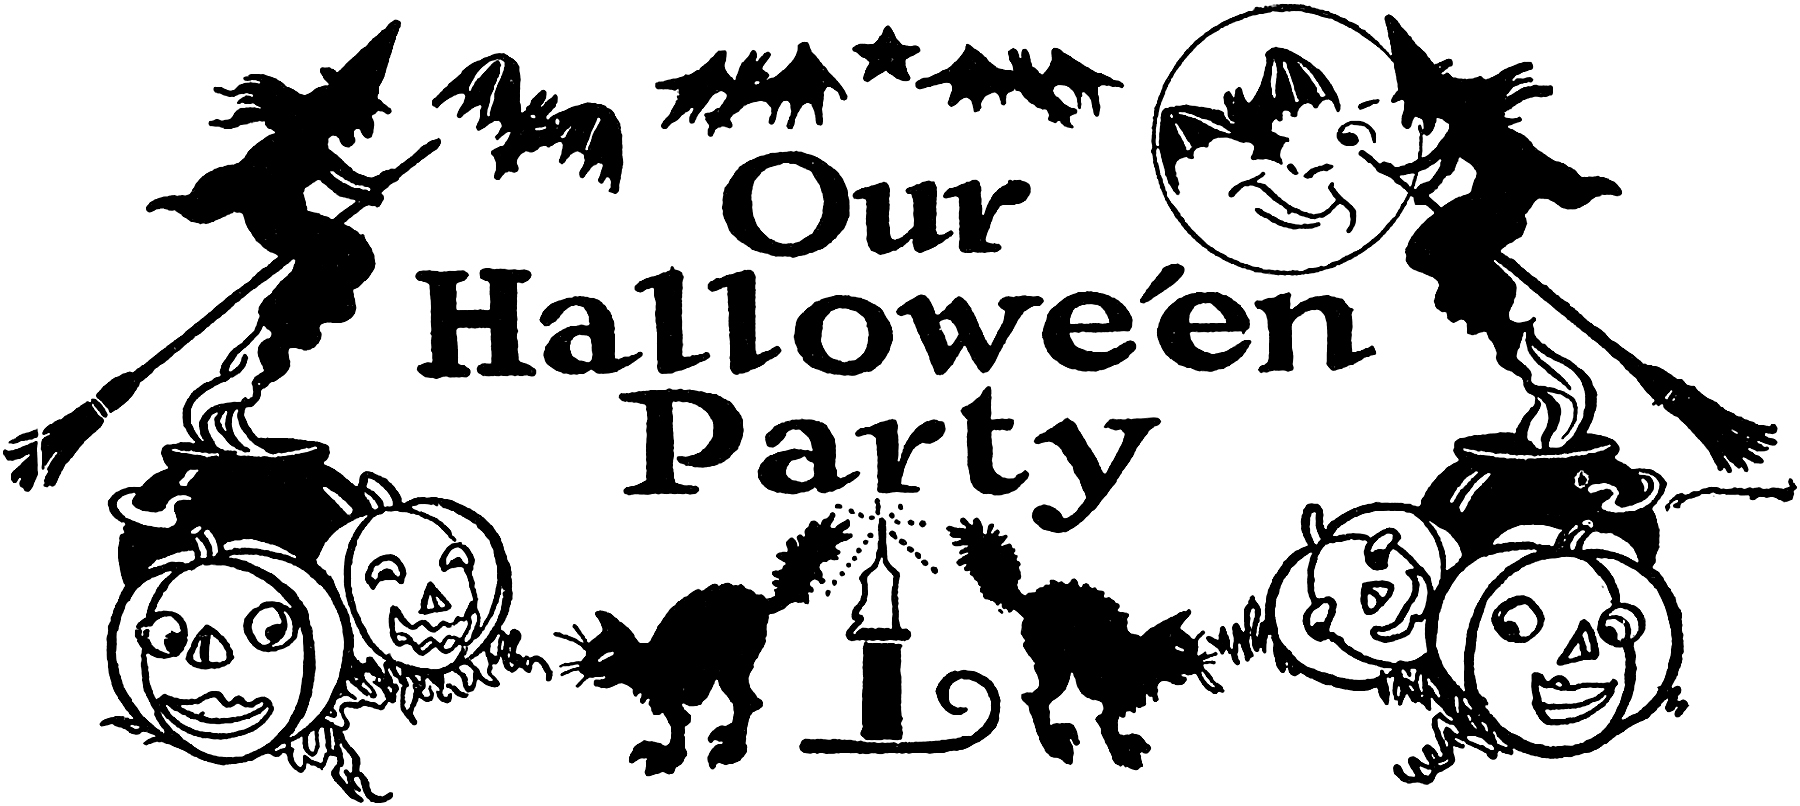 nostalgic black and white halloween party clip art! - the graphics fairy